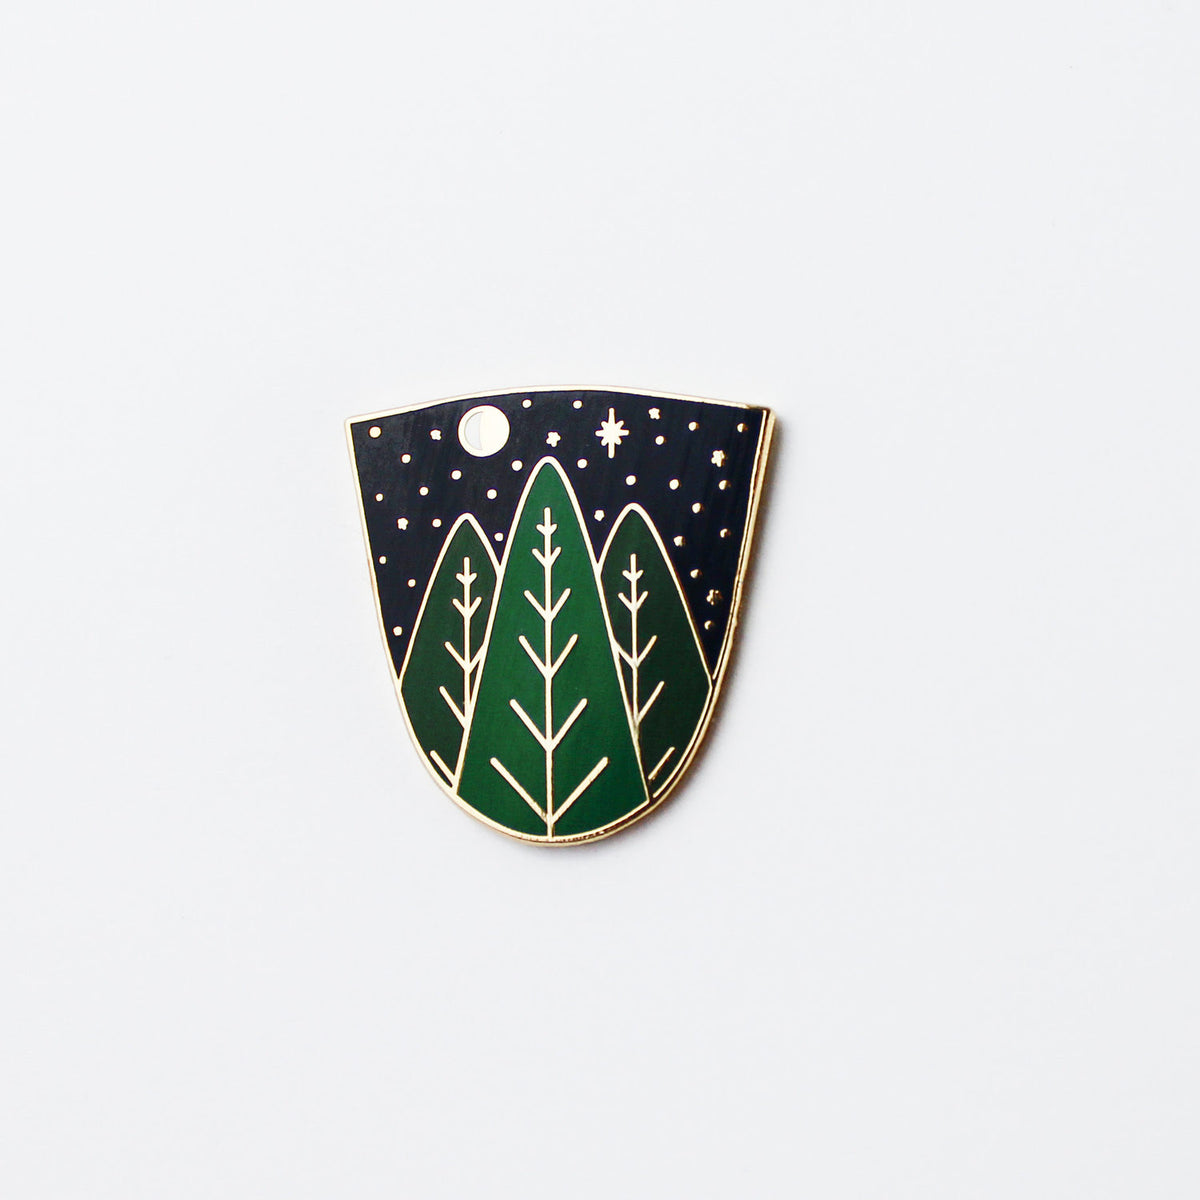 Hemleva Starry Night Pin